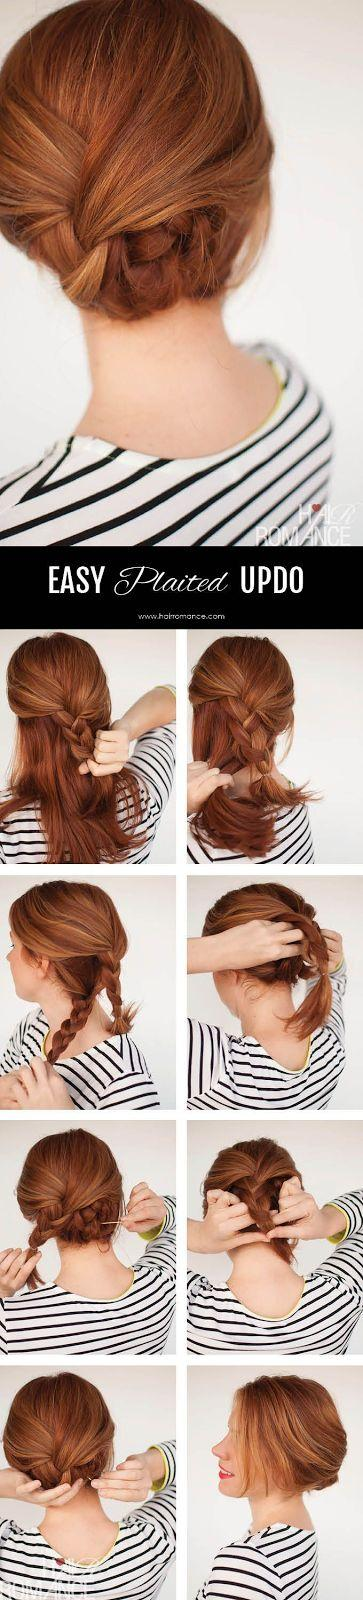 Mariage - 50 Simple Five Minute Hairstyles For Office Women: DIY